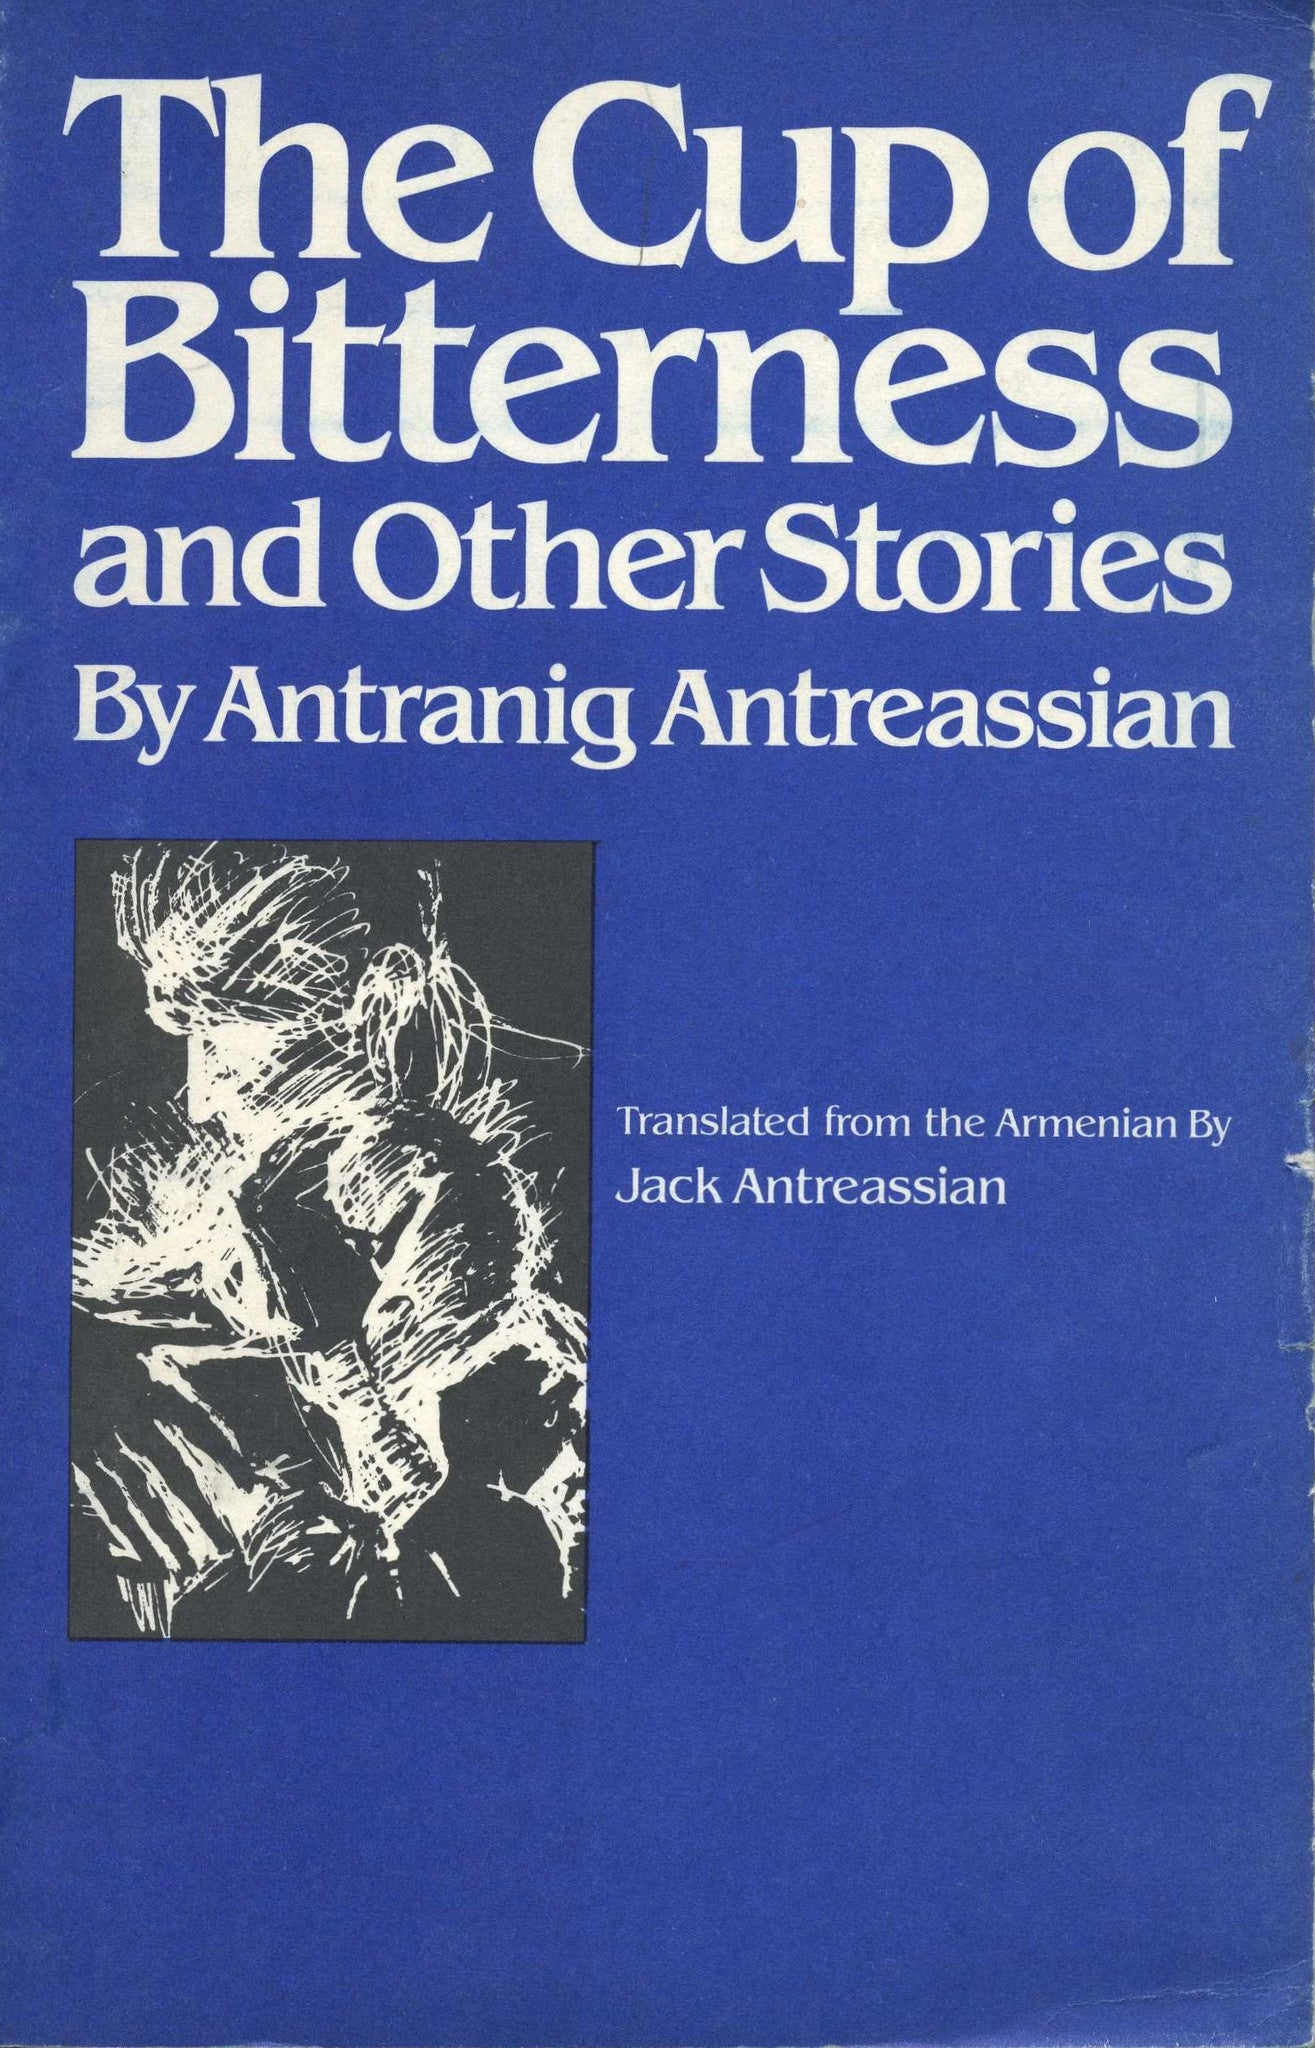 CUP OF BITTERNESS AND OTHER STORIES